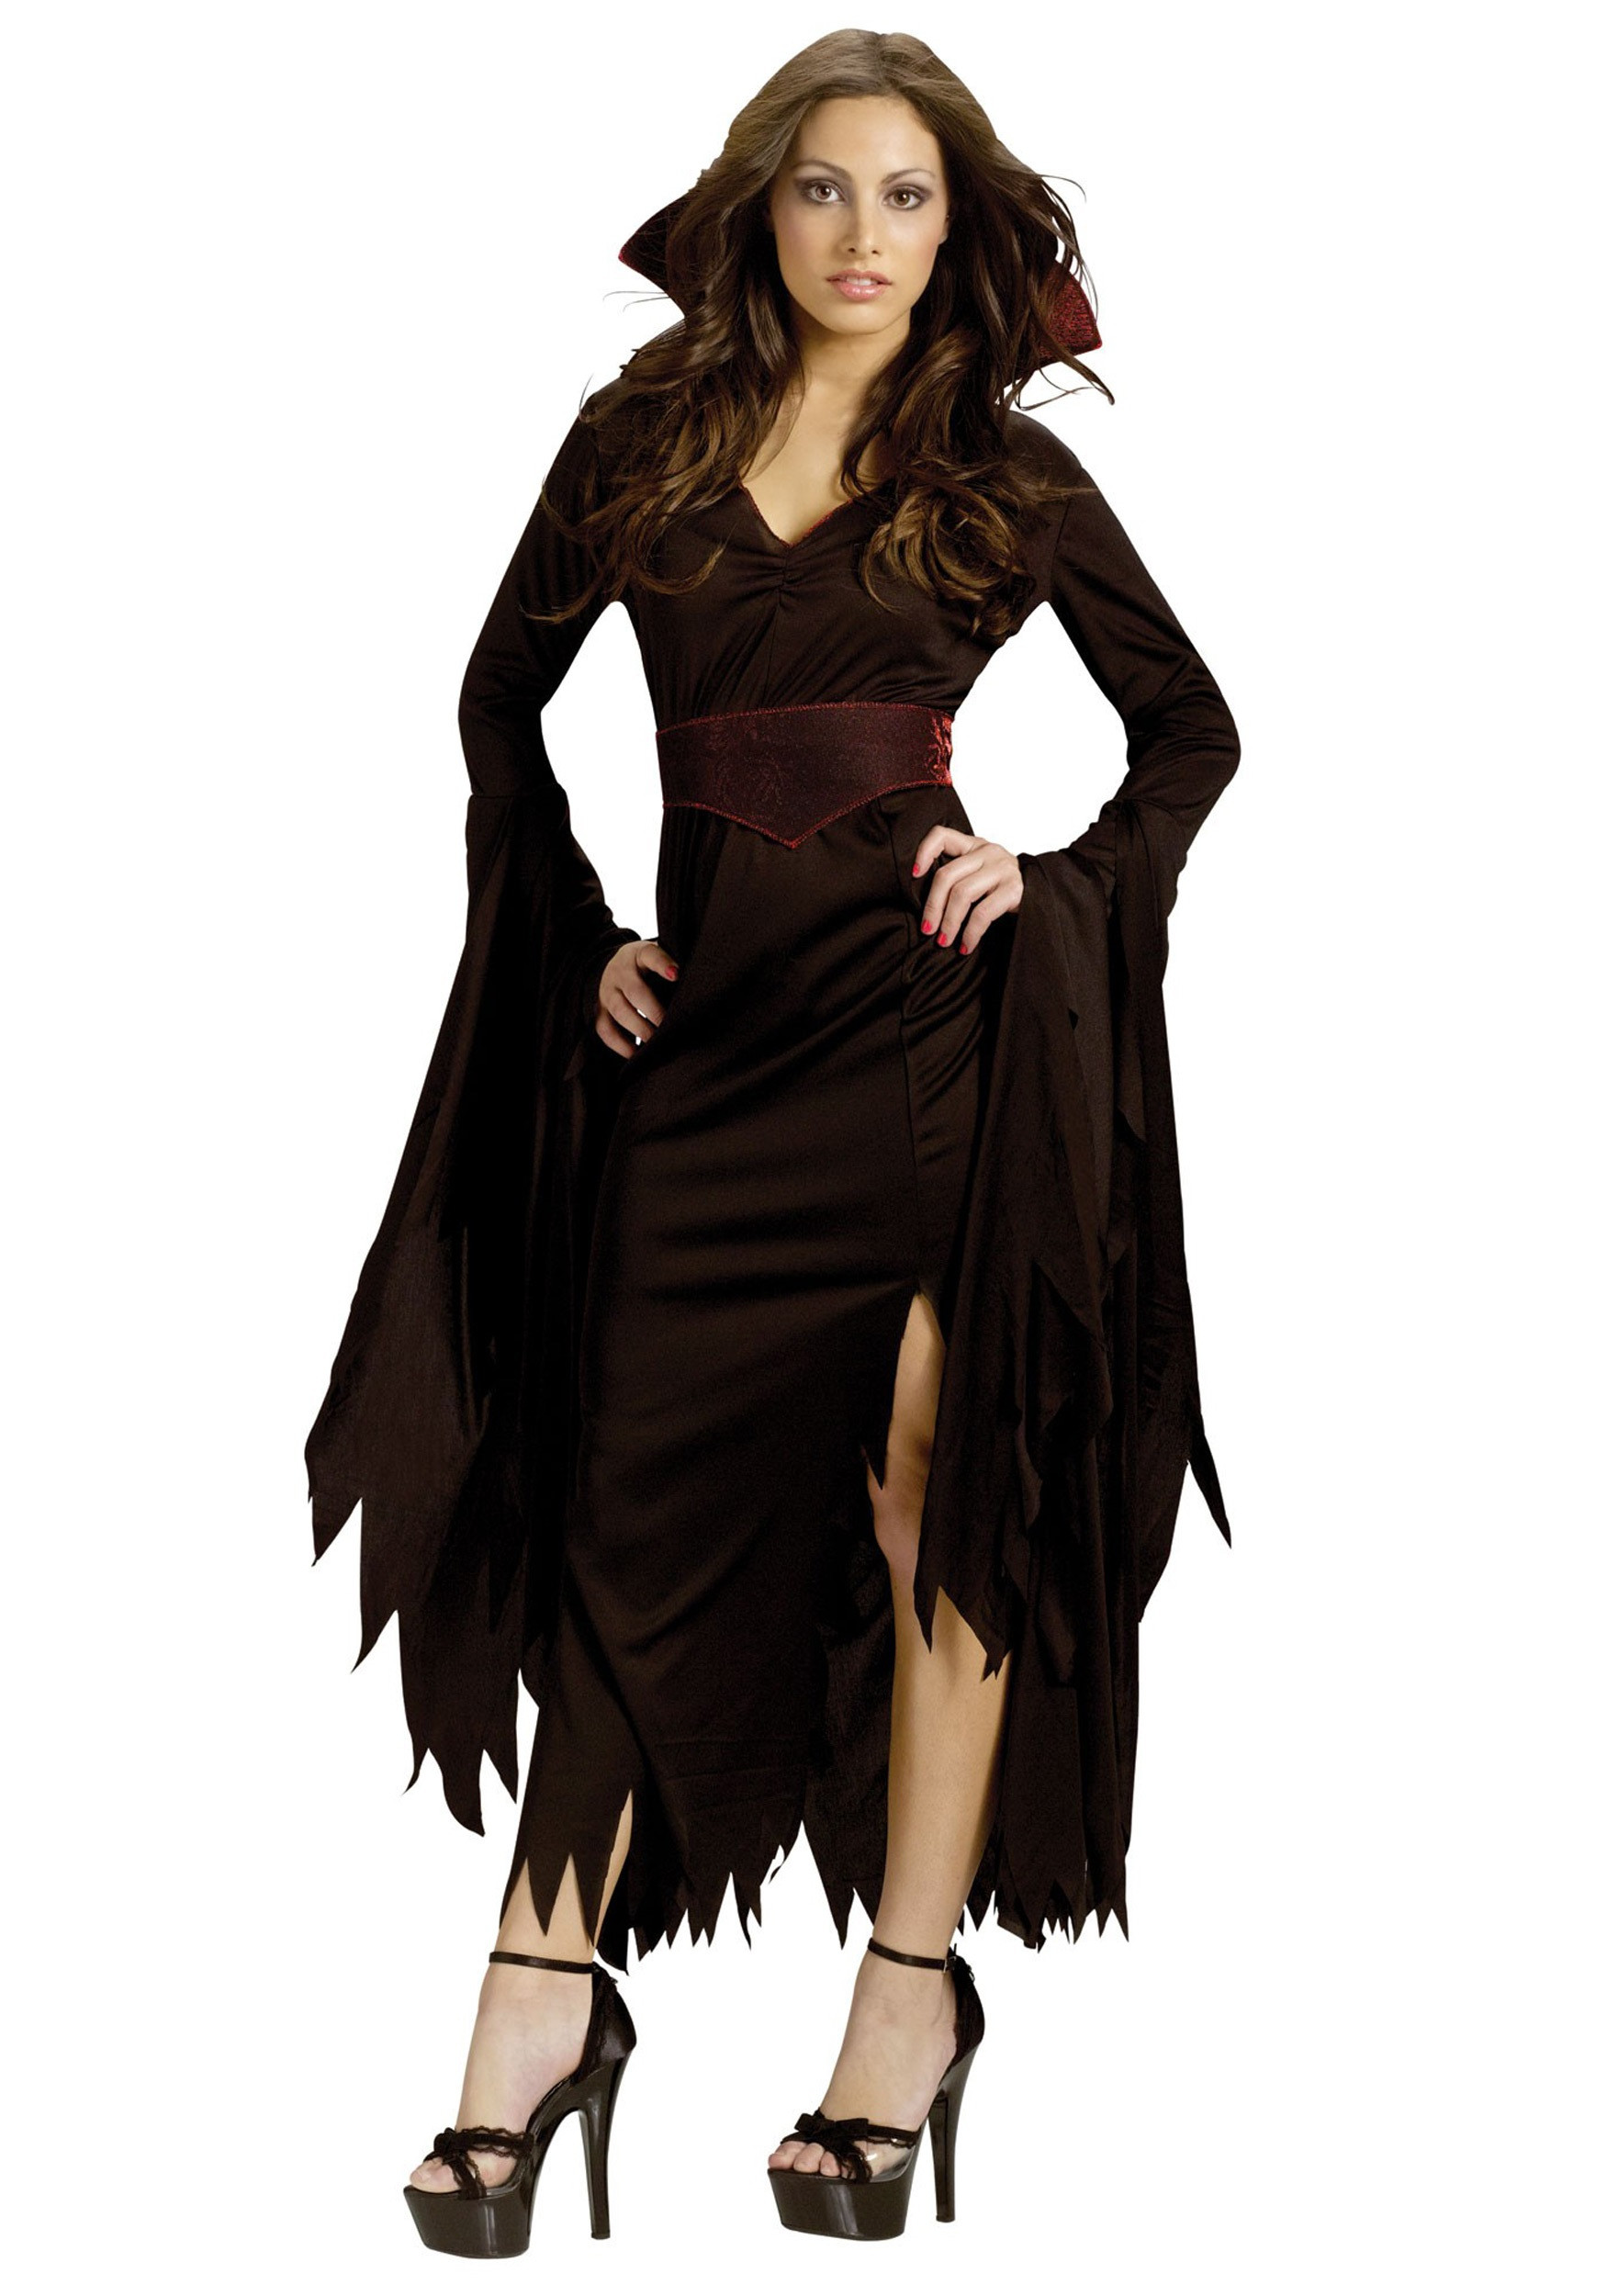 Best ideas about DIY Vampire Costumes For Women . Save or Pin Women s Gothic Vamp Costume Now.